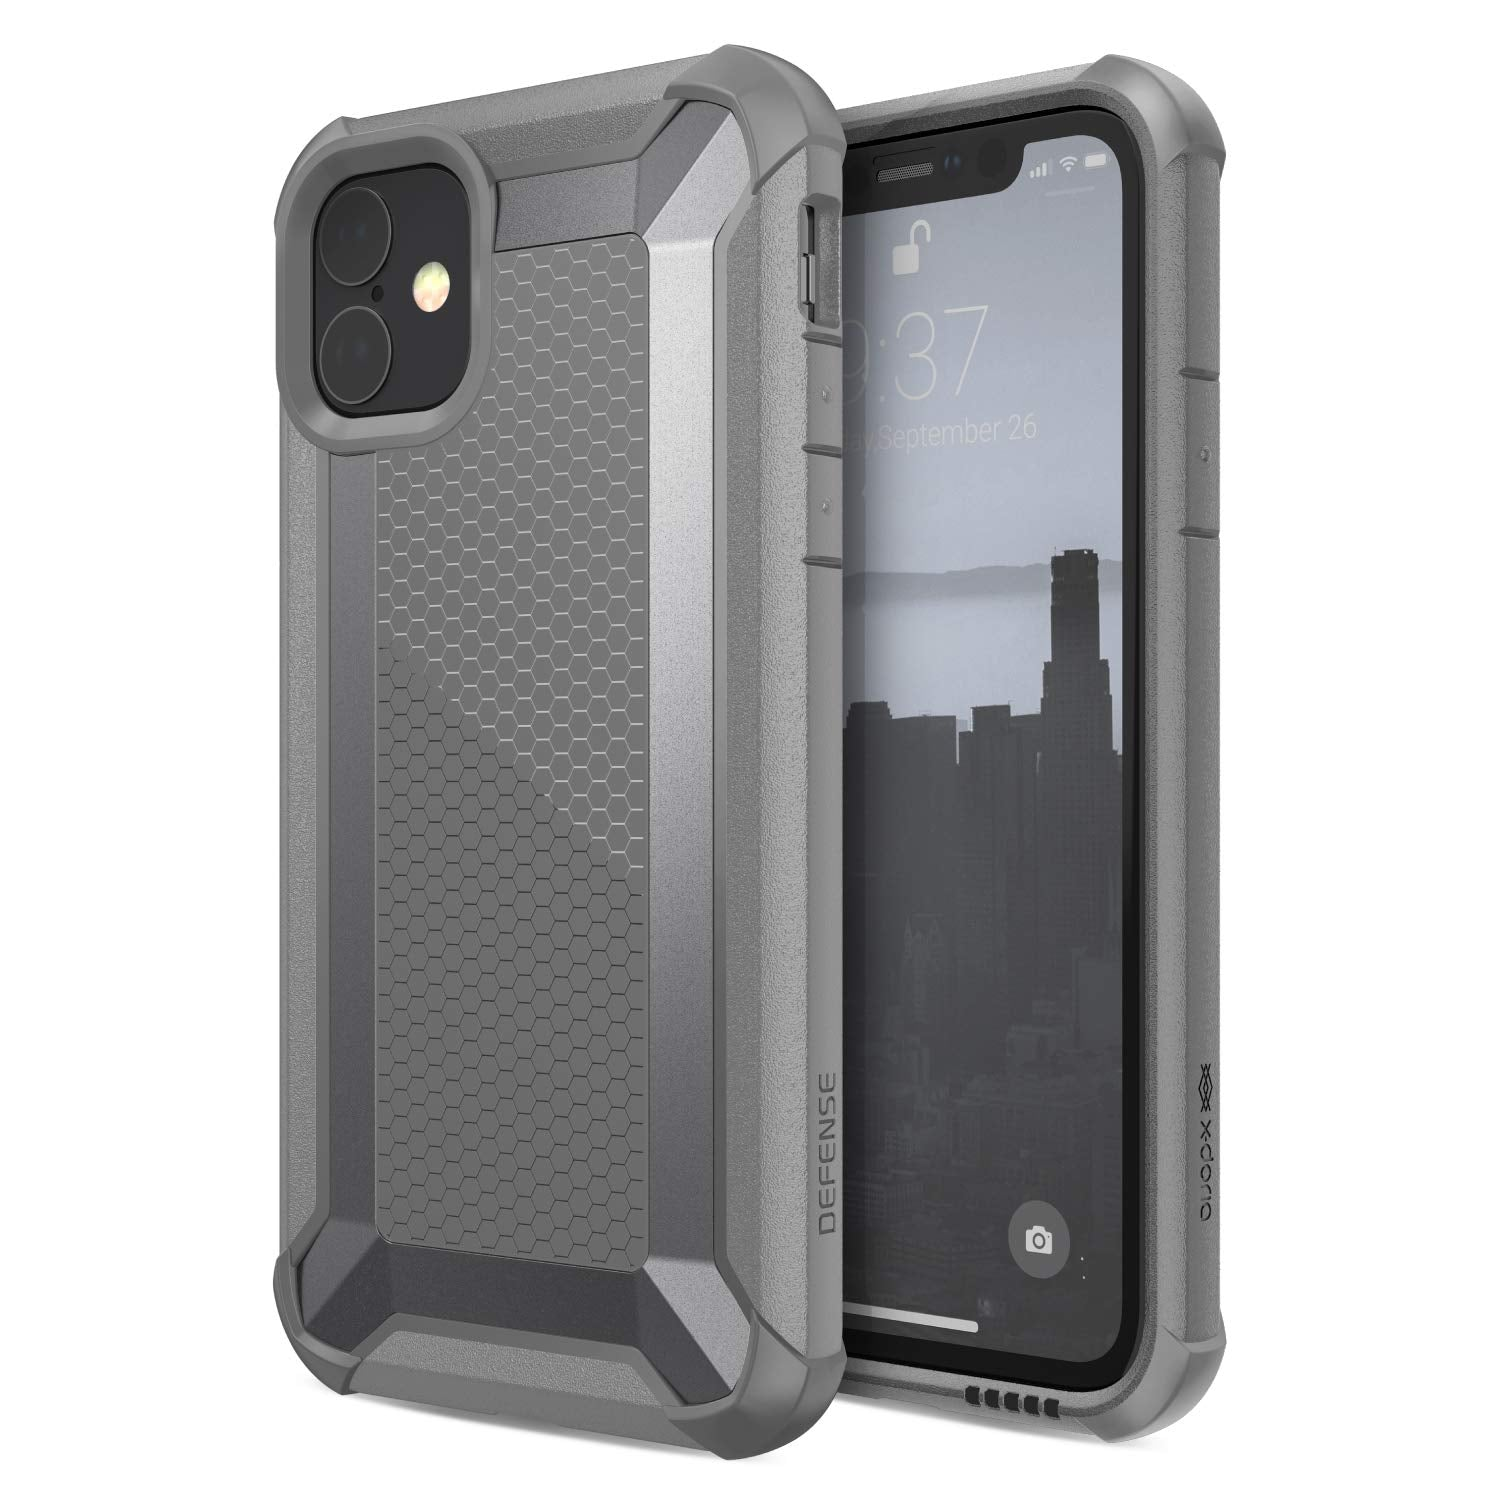 X-Doria Defense Tactical Aluminum Alloy Military Grade Drop Shield Heavy Duty Case Cover